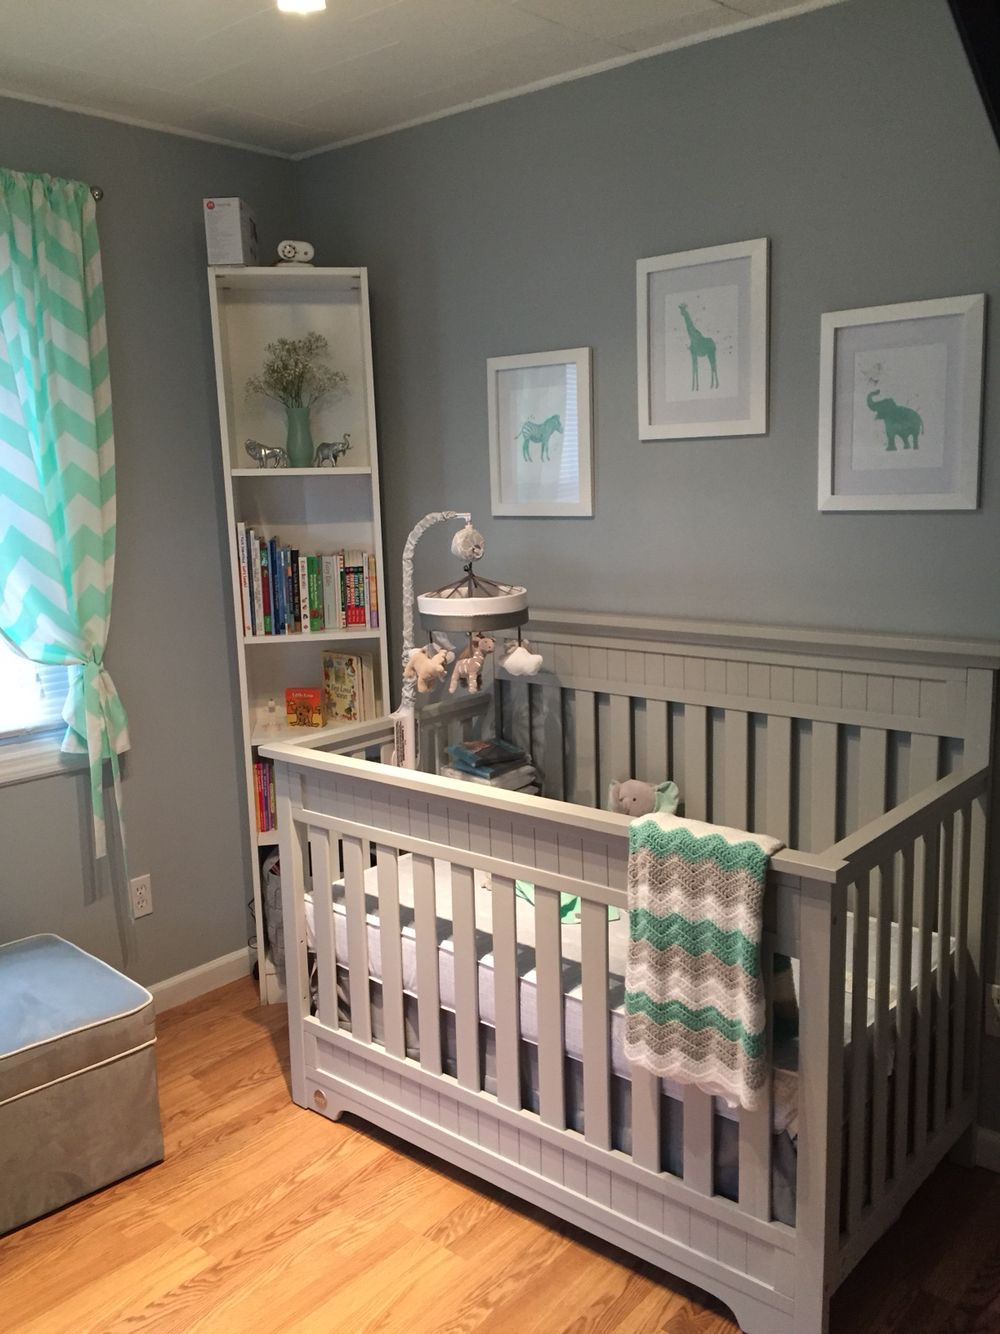 Our Little Baby Boy S Neutral Room: Neutral Mint Grey Safari Nursery Baby Room. Boy Or Girl